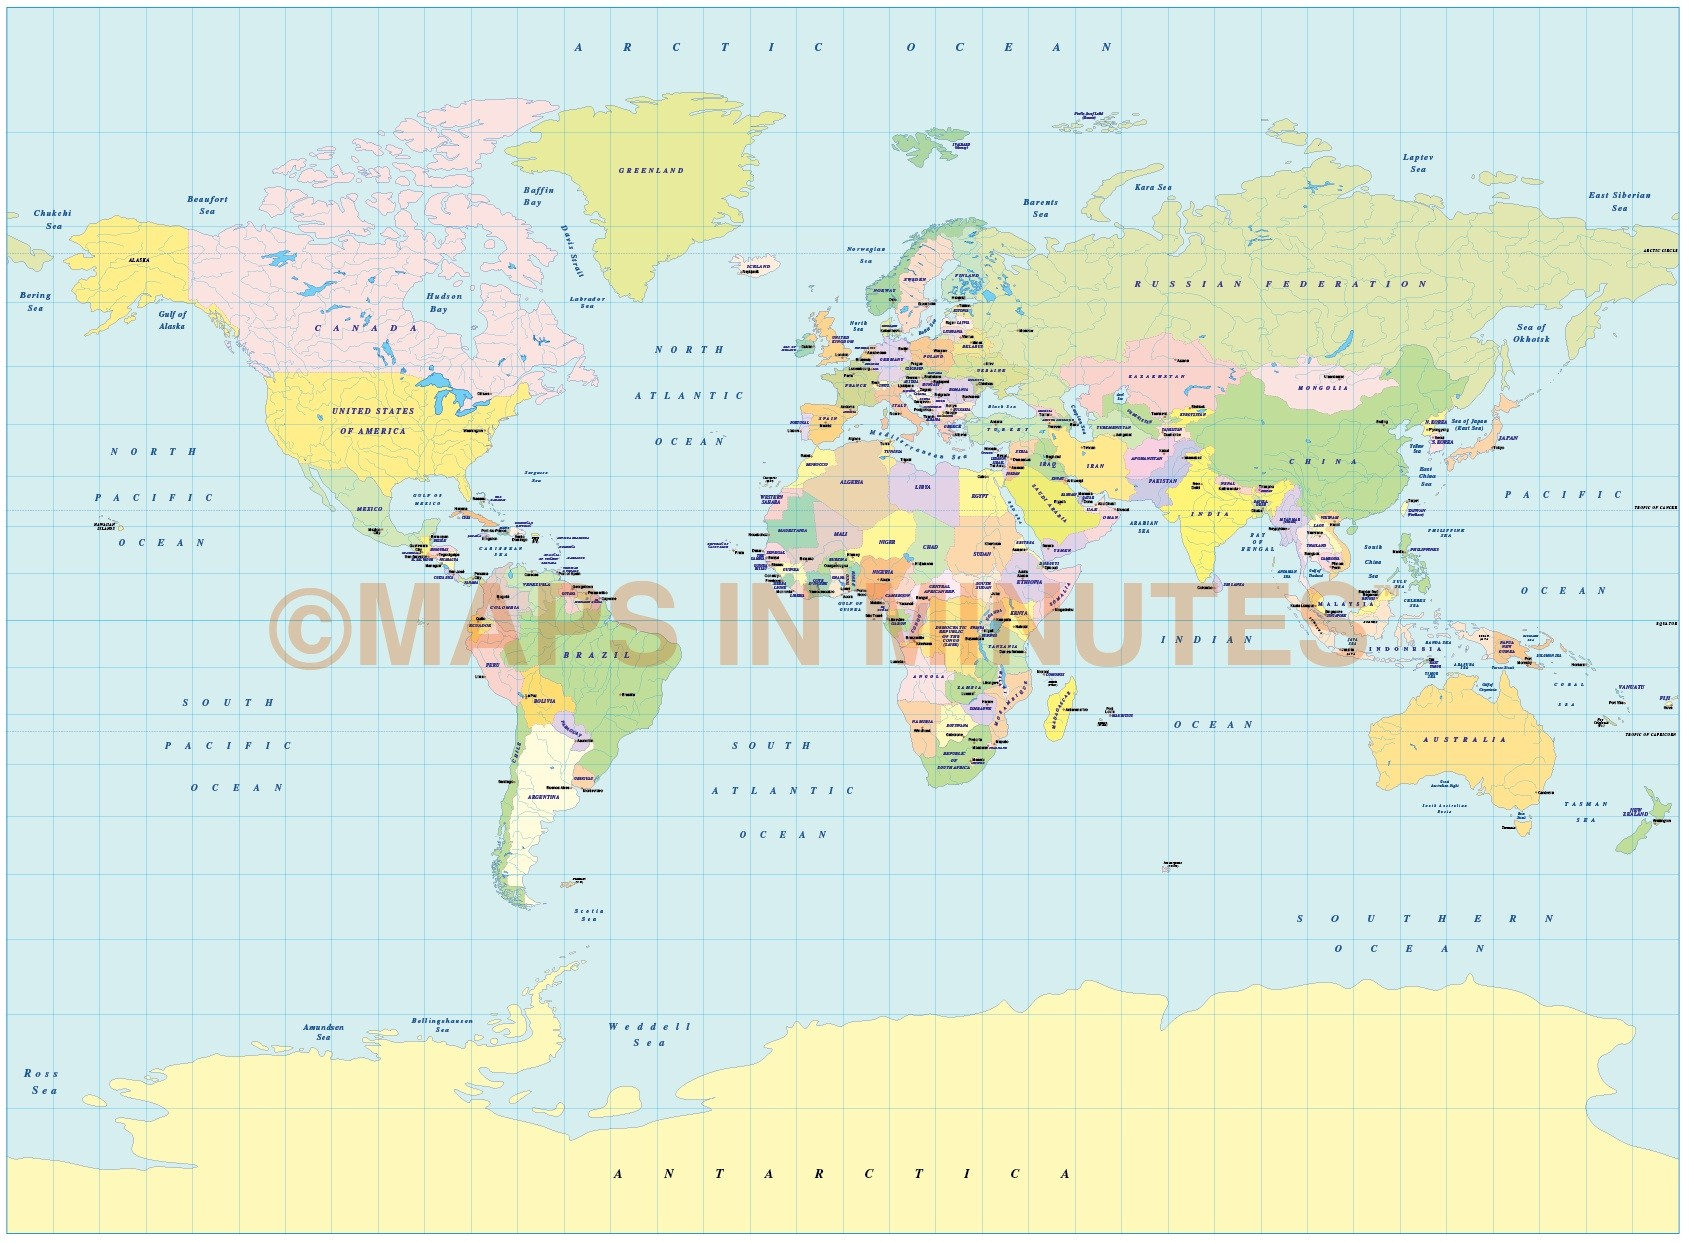 World GeoPolitical Small scale Map Collection - 10 map selection on traditional map, universal transverse mercator coordinate system, small area map, peters map, geographic coordinate system, political map, history of cartography, grid reference, geographic information system, cartographic relief depiction, space map, world map, organic map, large map, aerial photography, thematic map, spatial analysis, print map, small water map, small to large-scale, research map, small point map, compass rose, earth remote sensing, landscape map, map projection, mental map, contour line, general map, corporate map, linear scale, industrial map,